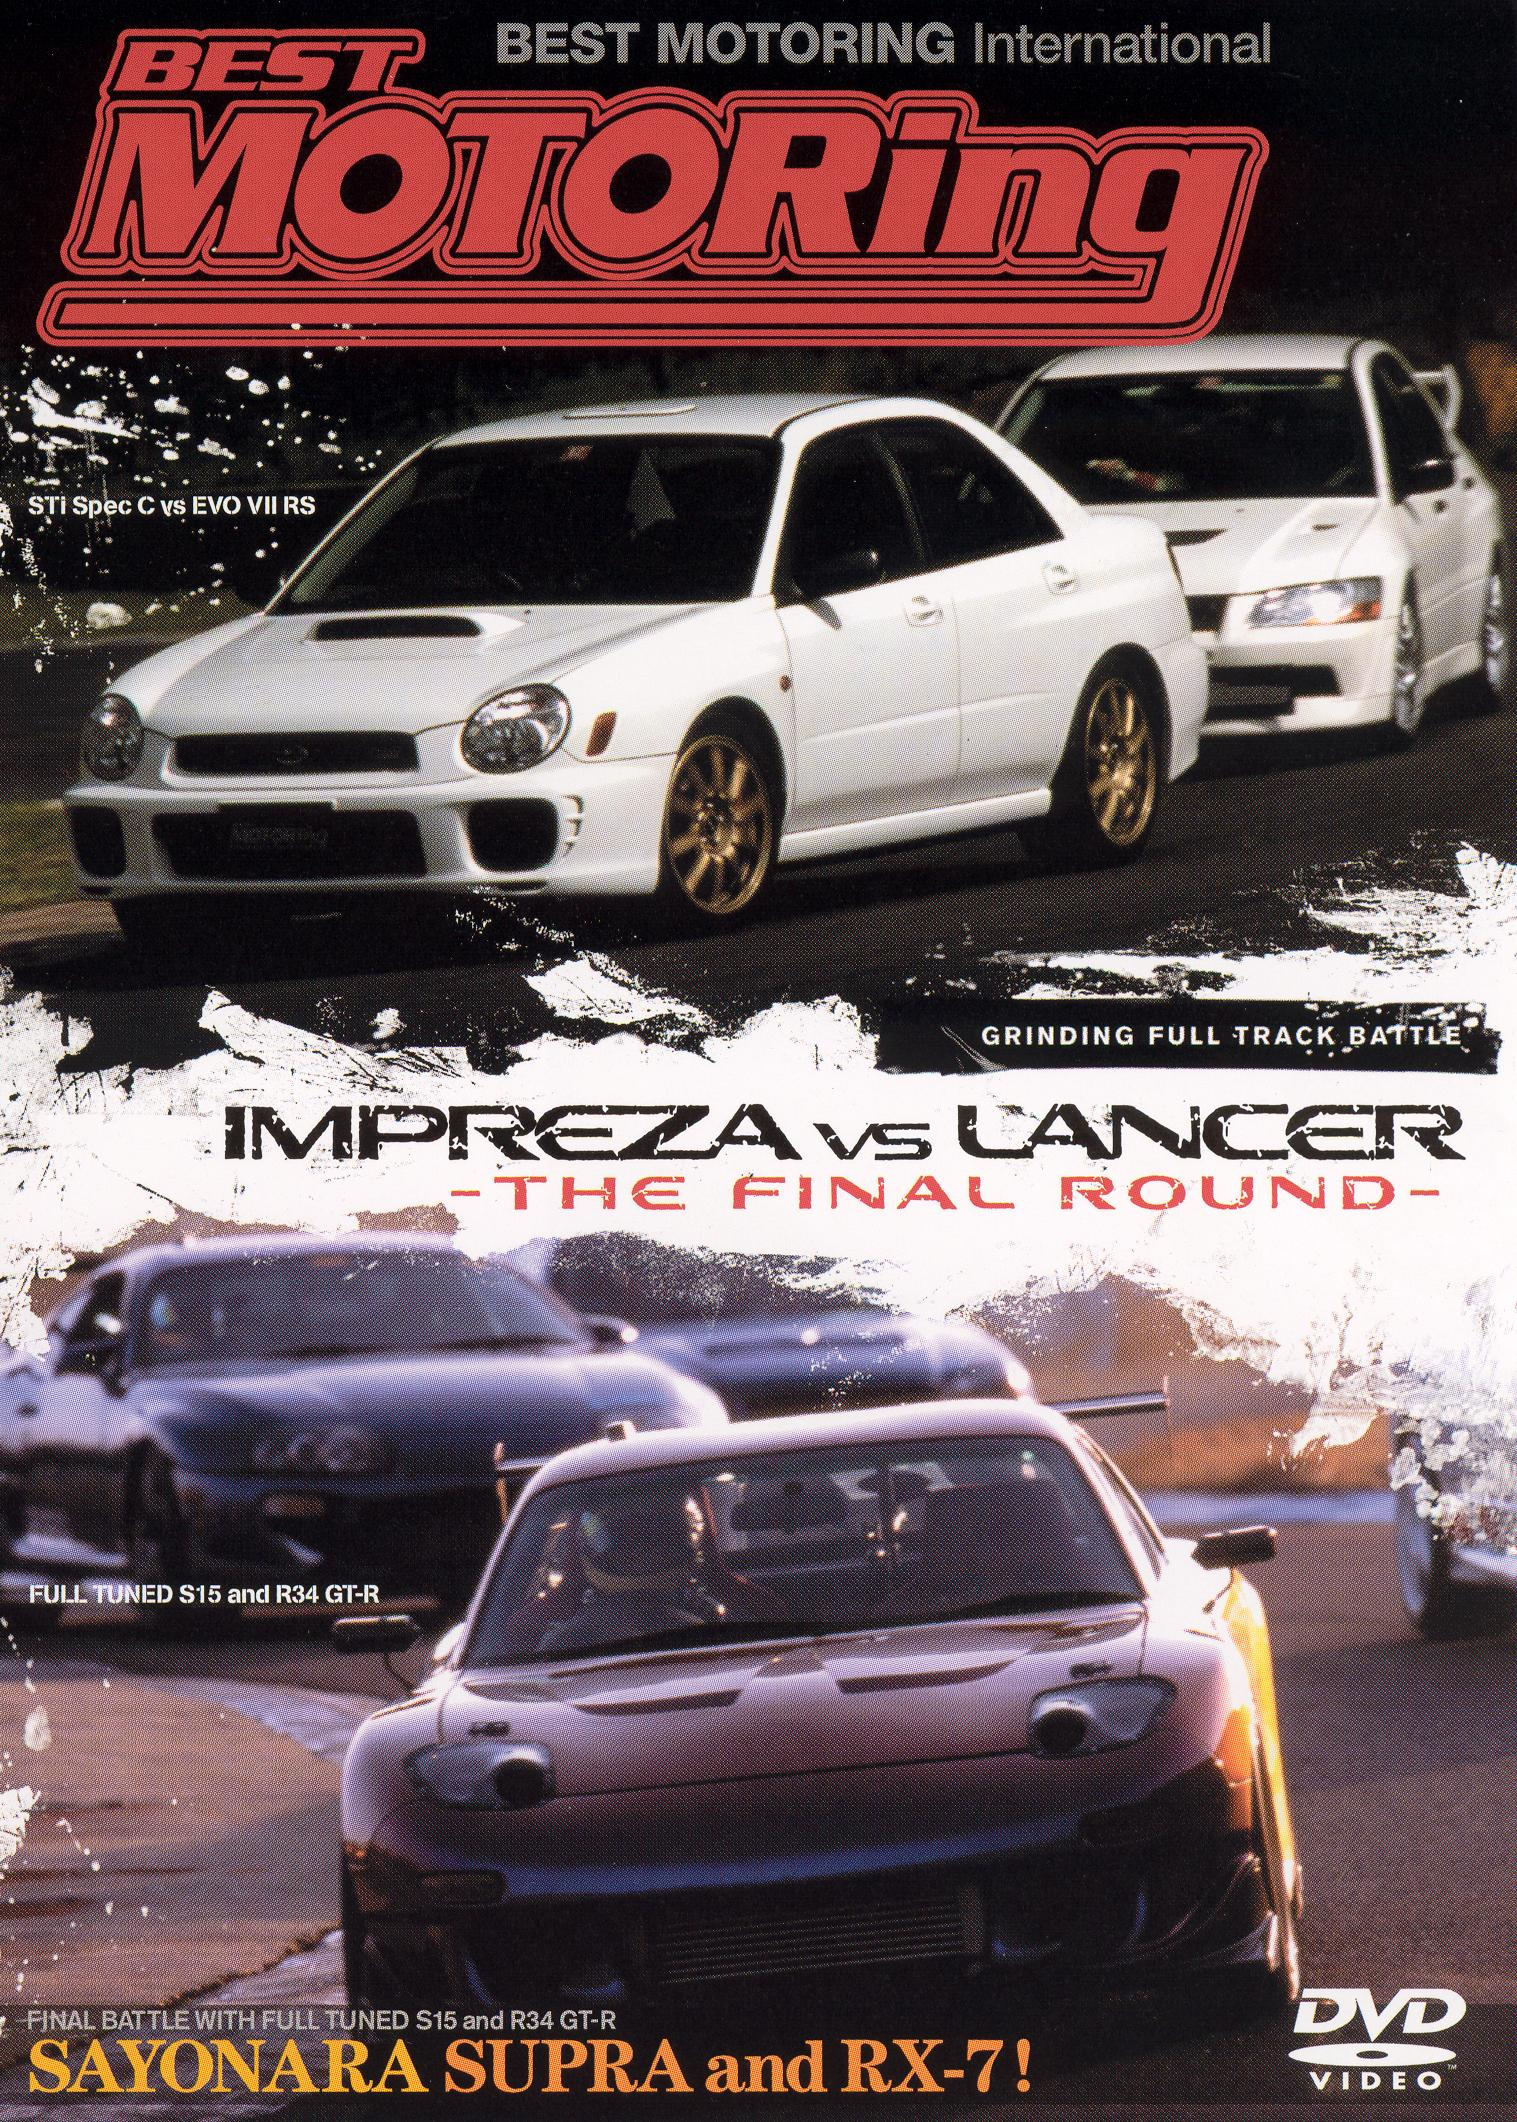 Best Motoring: Impreza vs. Lancer - The Final Round